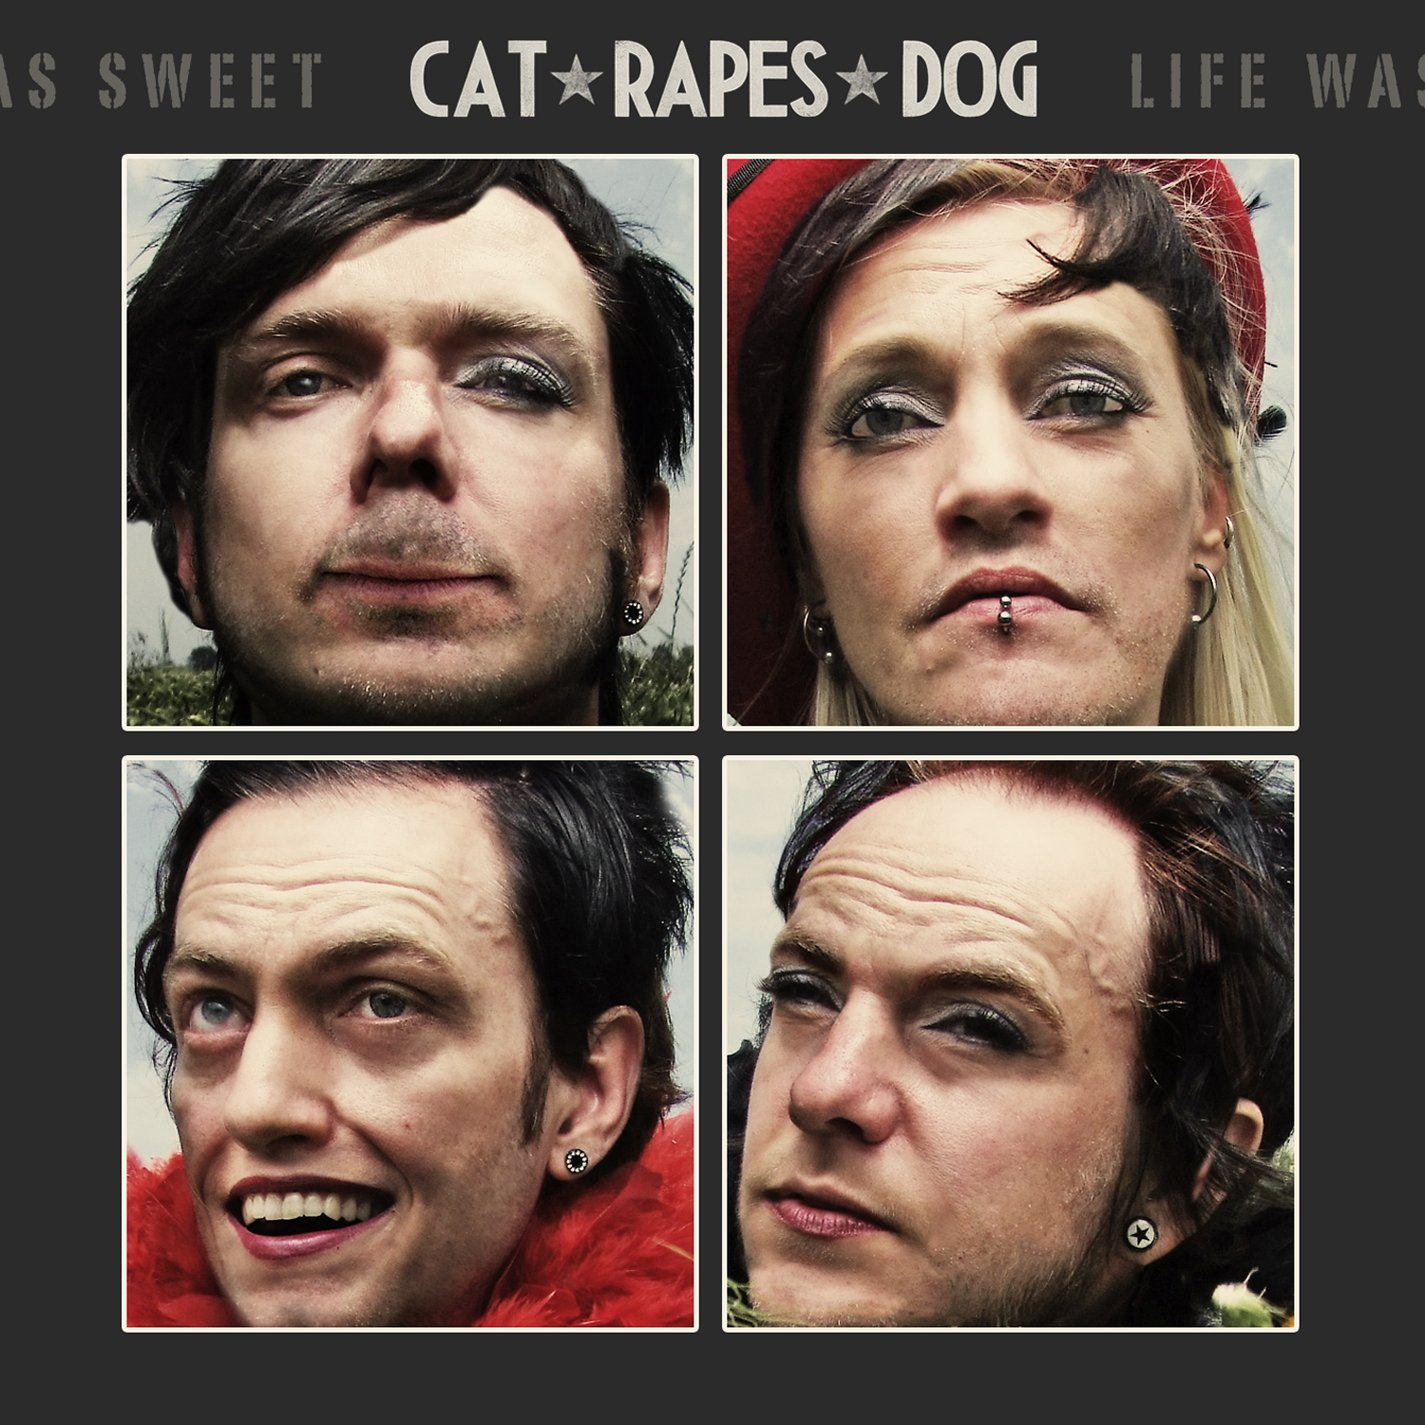 cat rapes dog - life was sweet